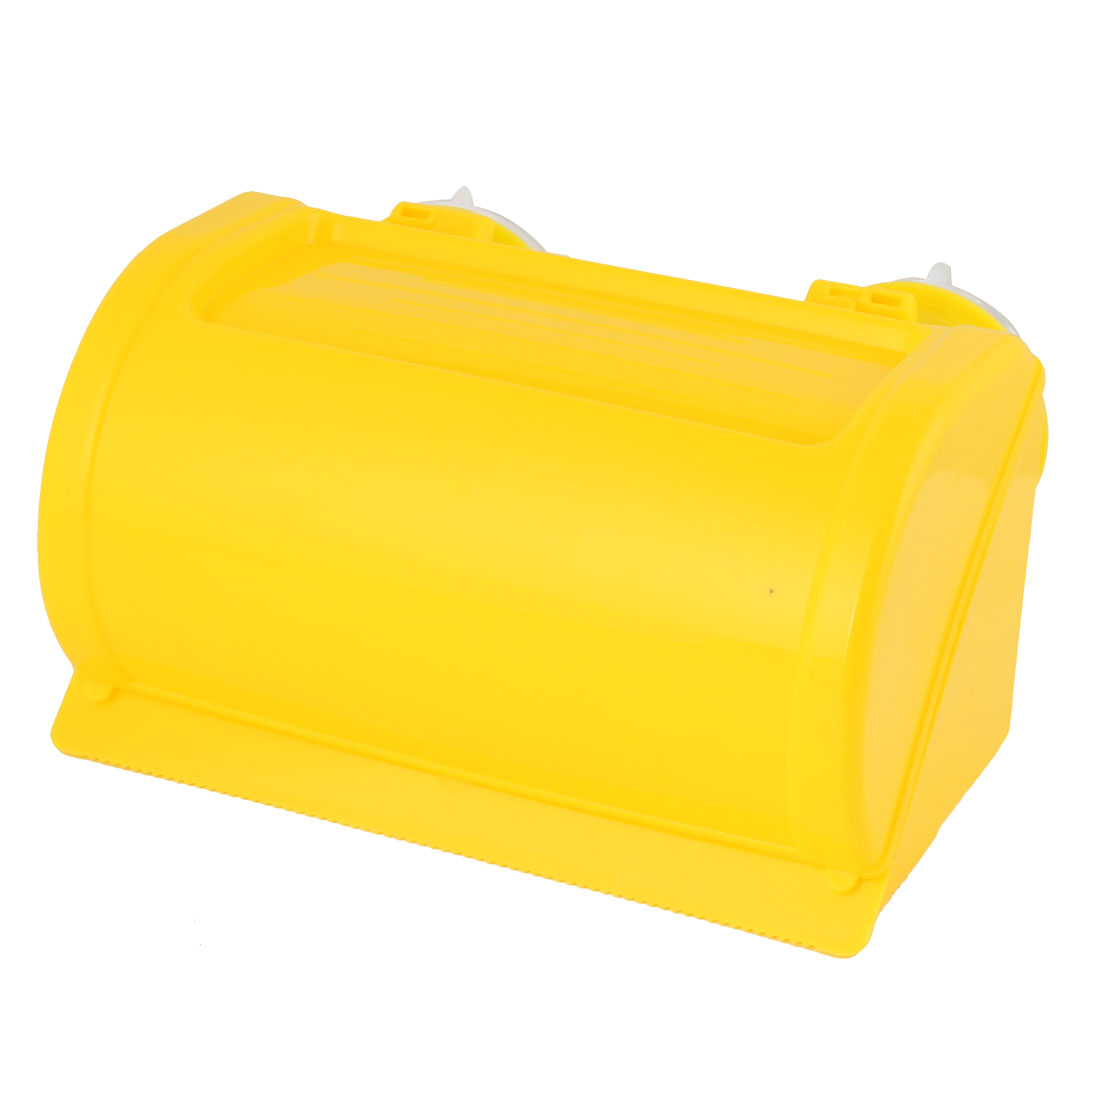 Bathroom Plastic Suction Cup Toilet Roll Paper Tissue Holder Hanger Yellow